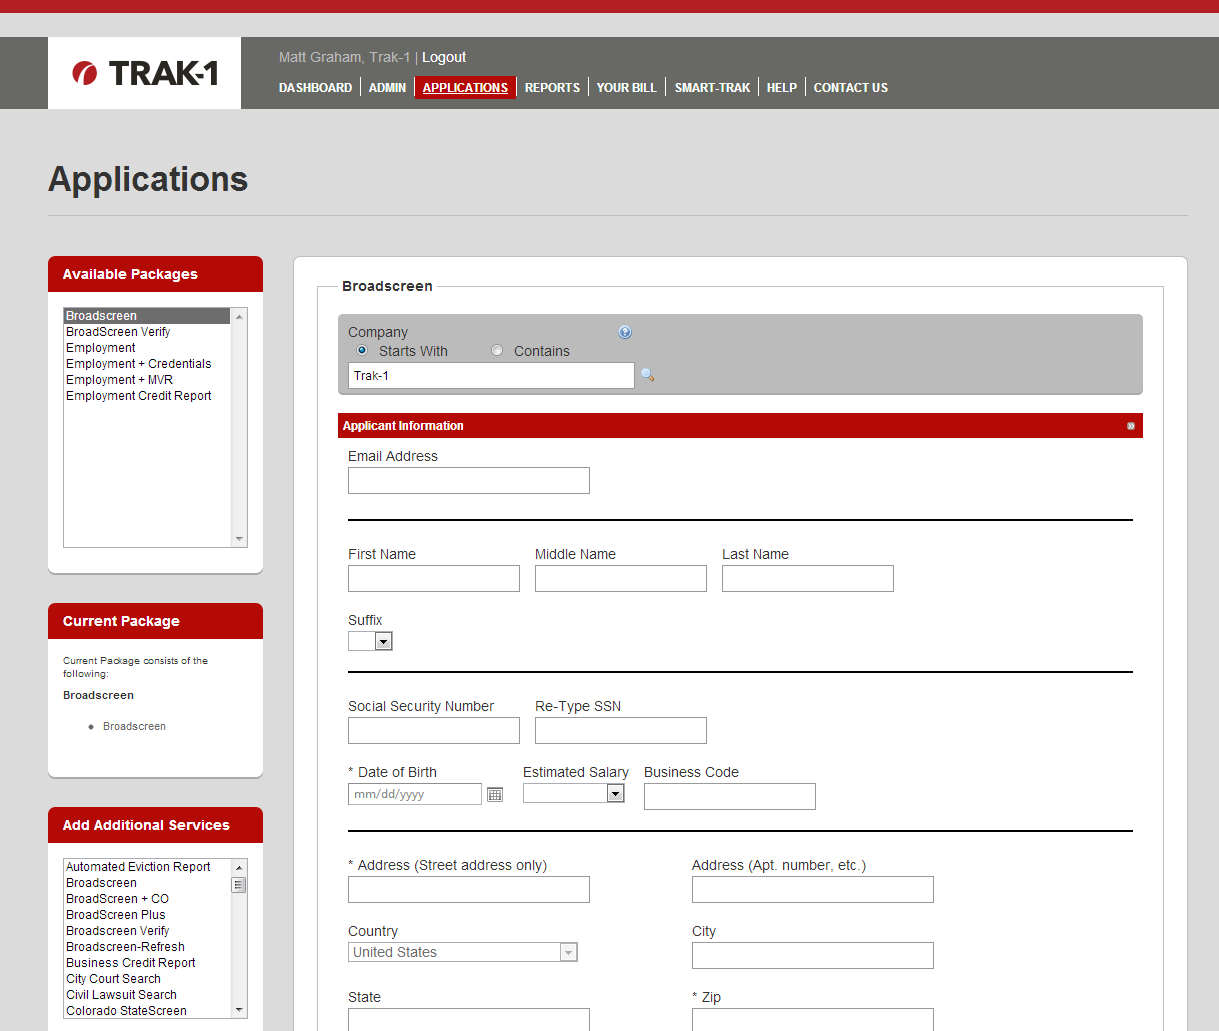 Applications Page